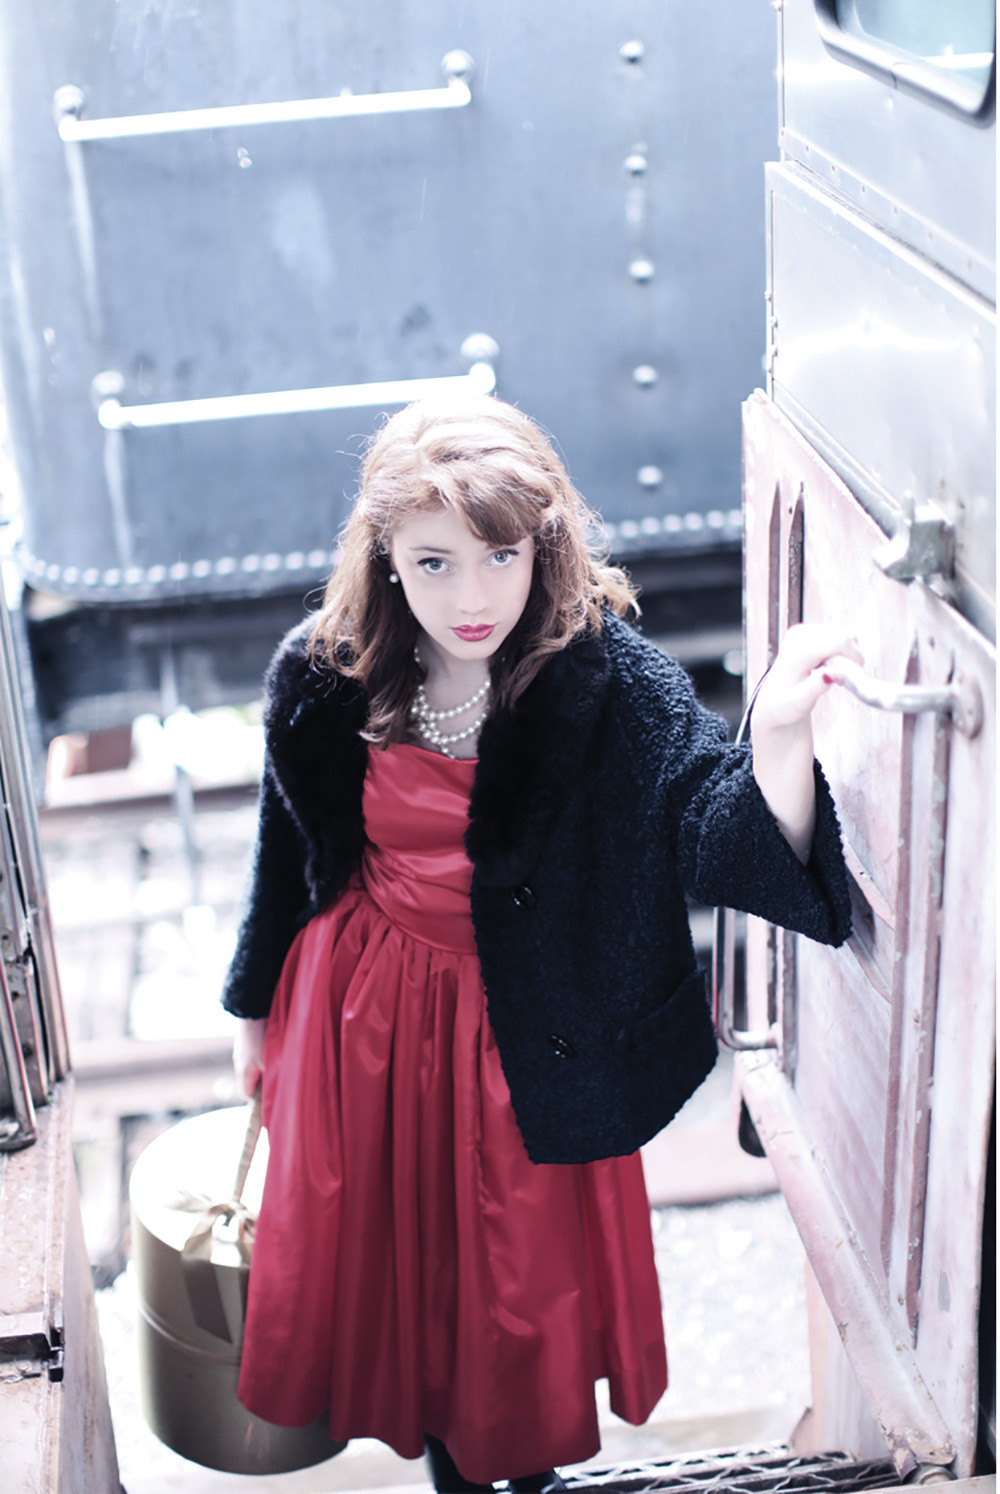 young woman with 1940's victory roll in a red dress and black fur coat boards an old train carrying a hat box